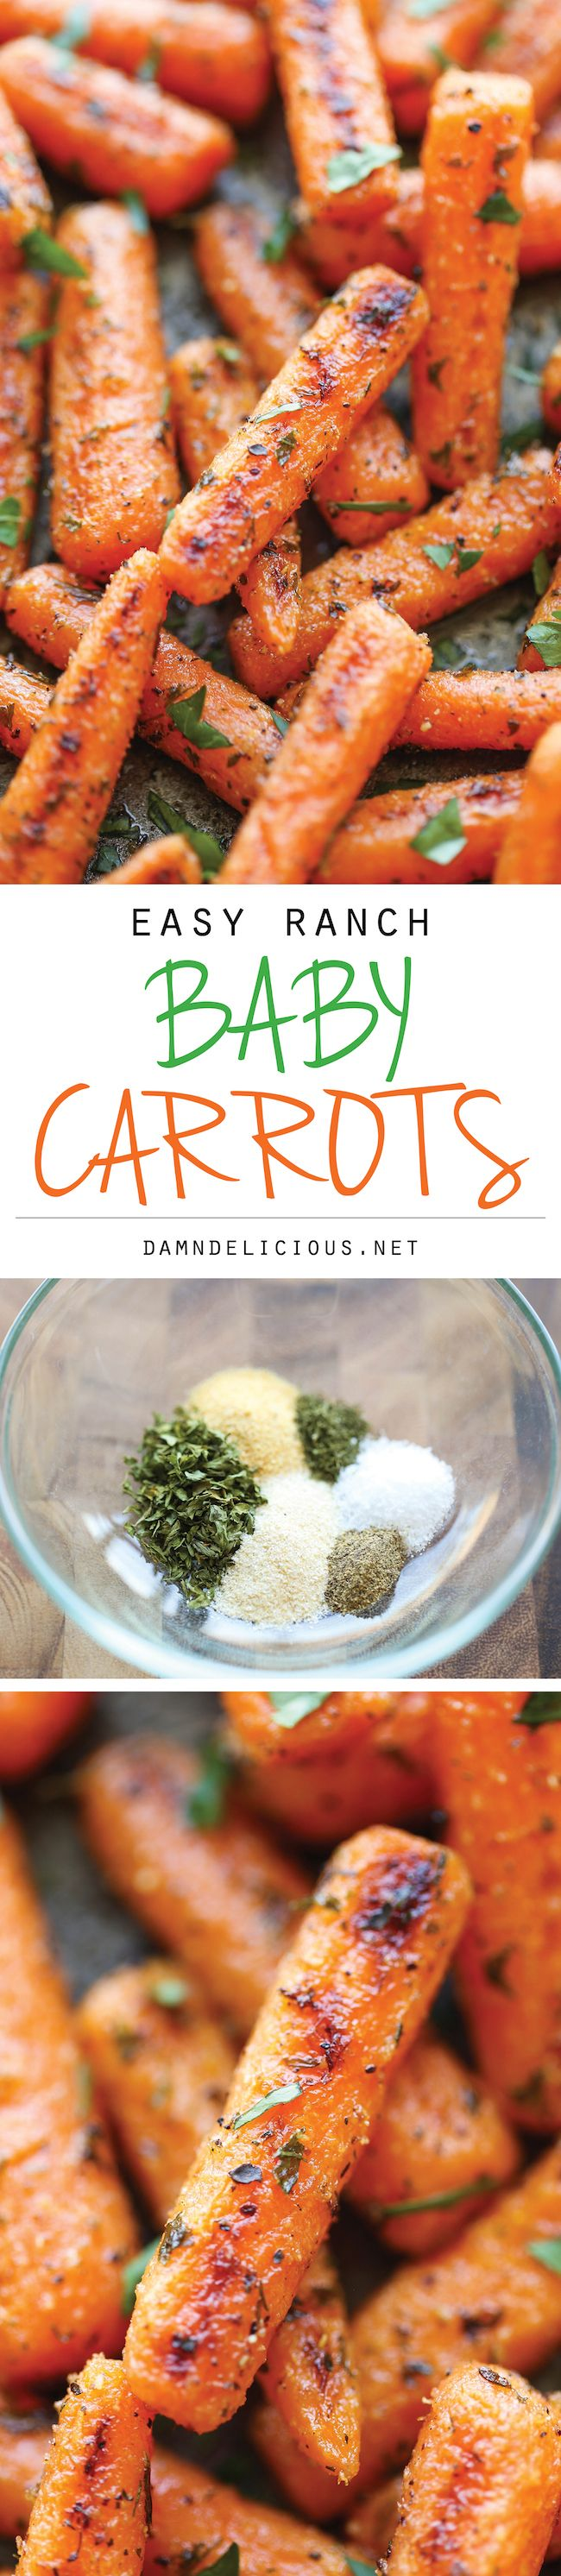 Easy Ranch Baby Carrots - Made with homemade Ranch seasoning and roasted to crisp-tender perfection. And all you need is 5 min prep and one pan.